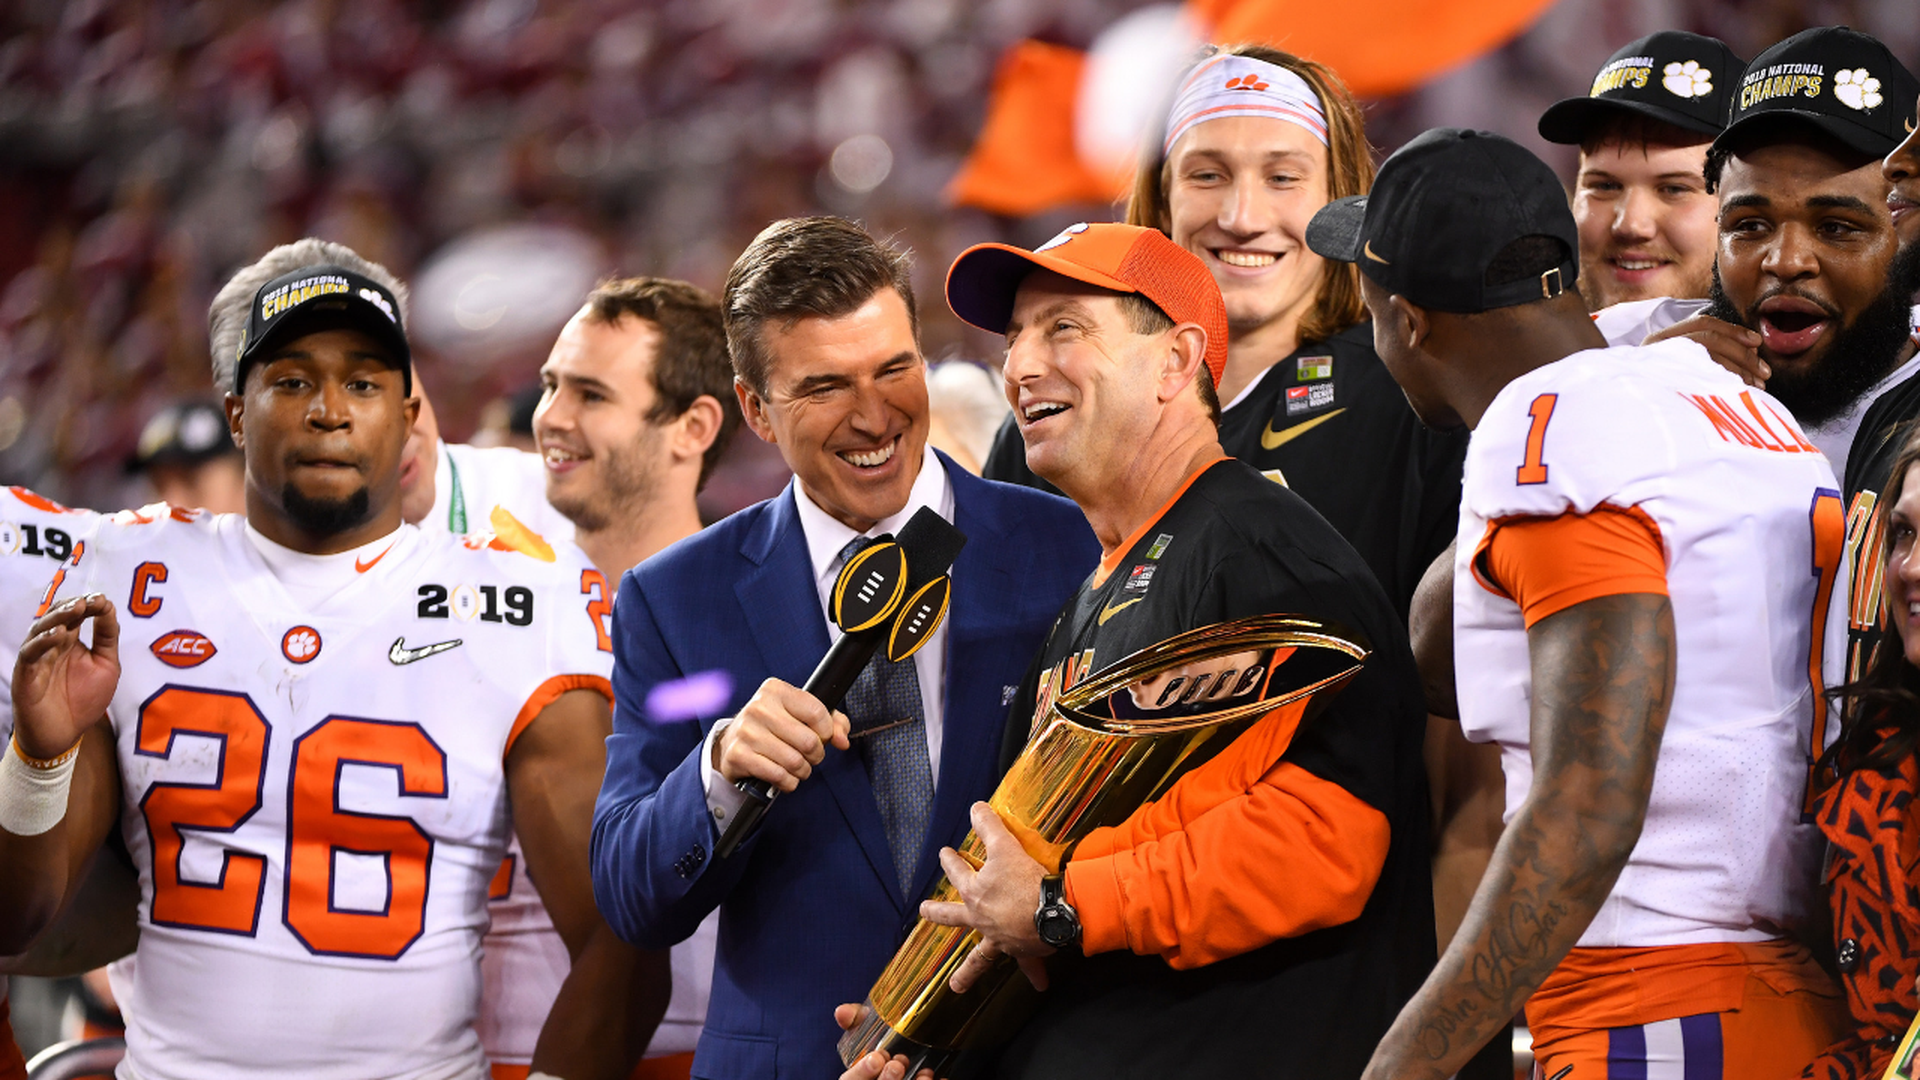 Dabo Swinney after winning the National Championship